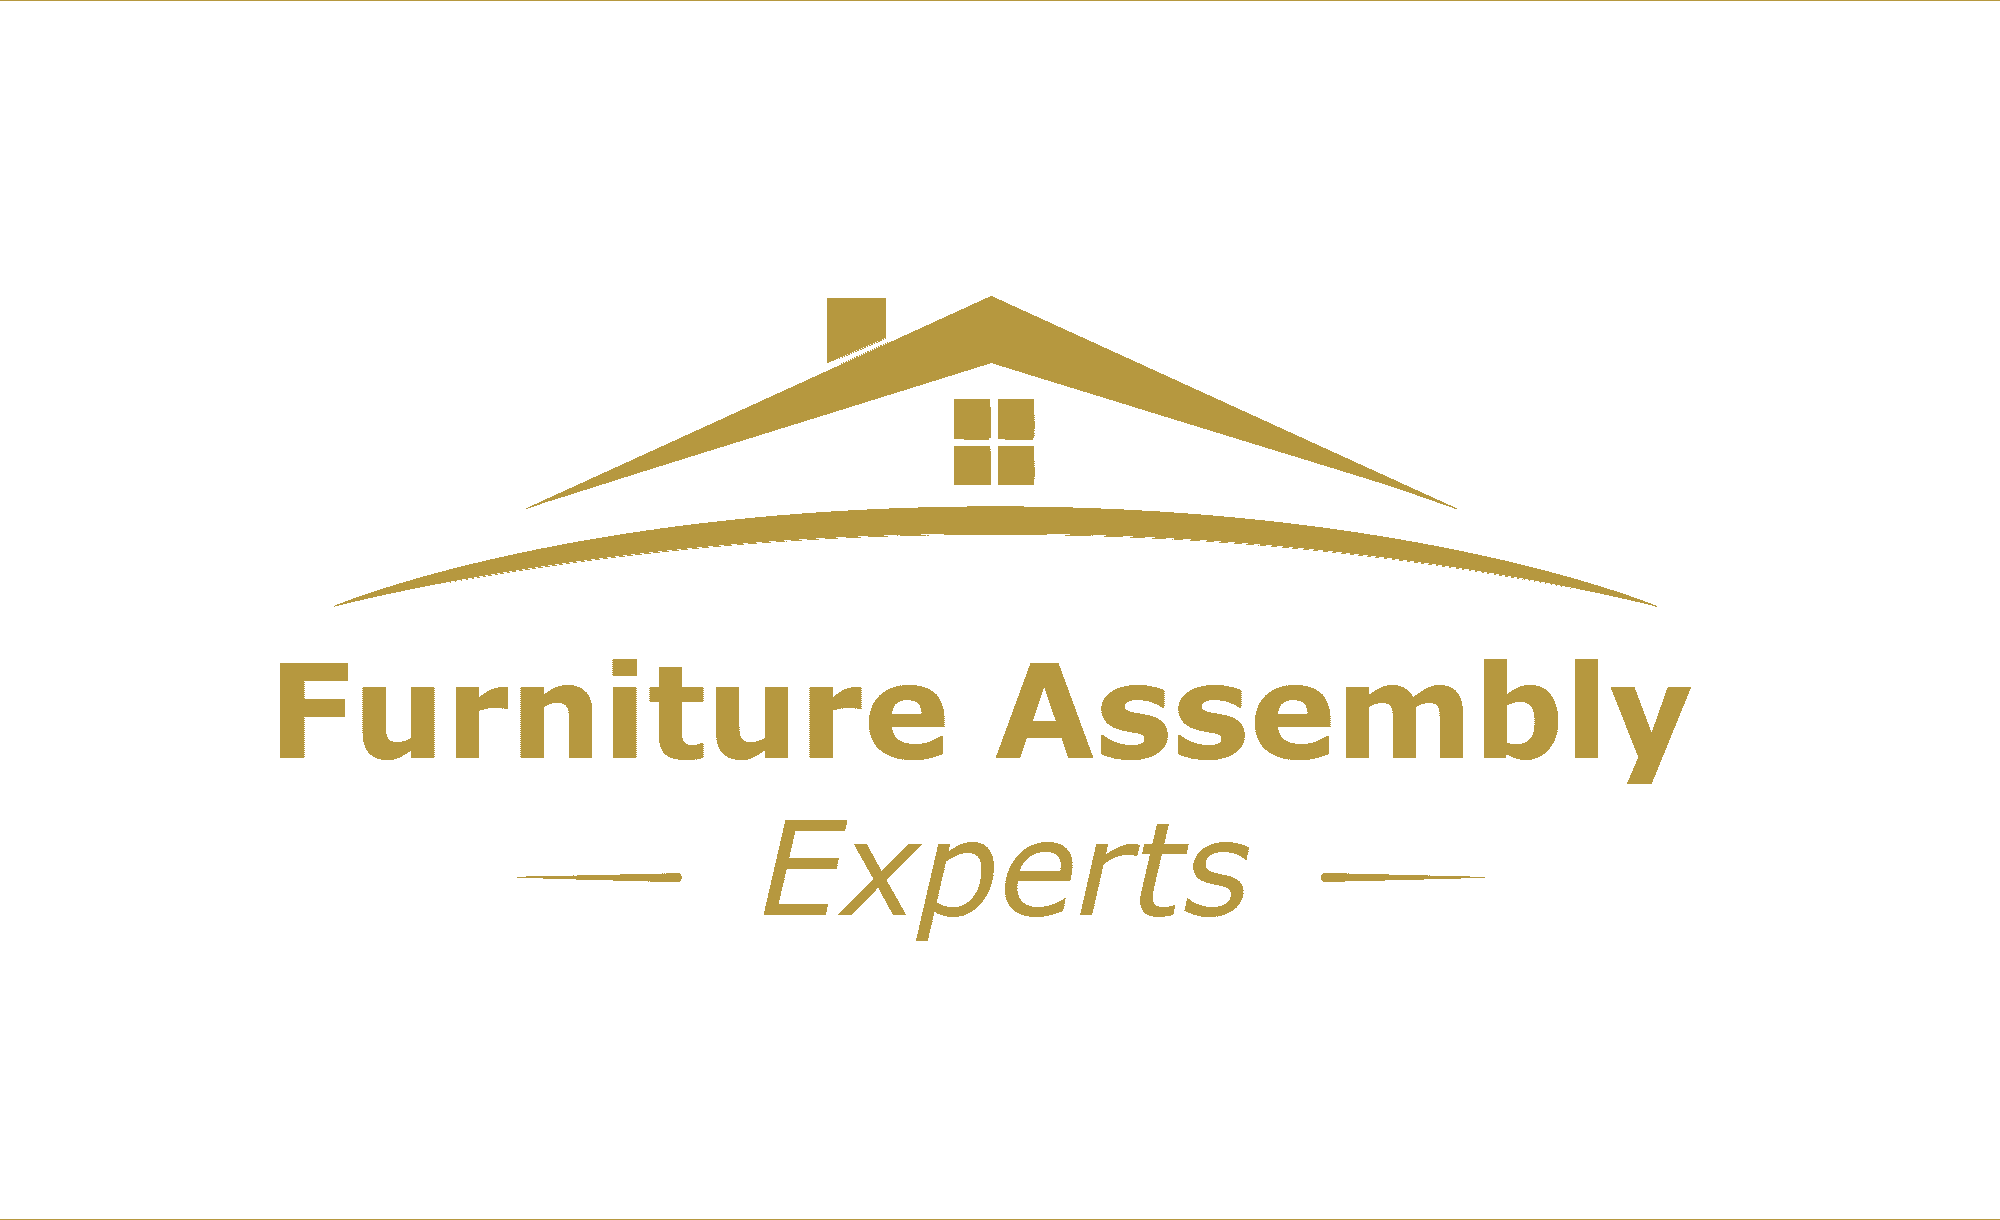 Furniture Assembly Expert